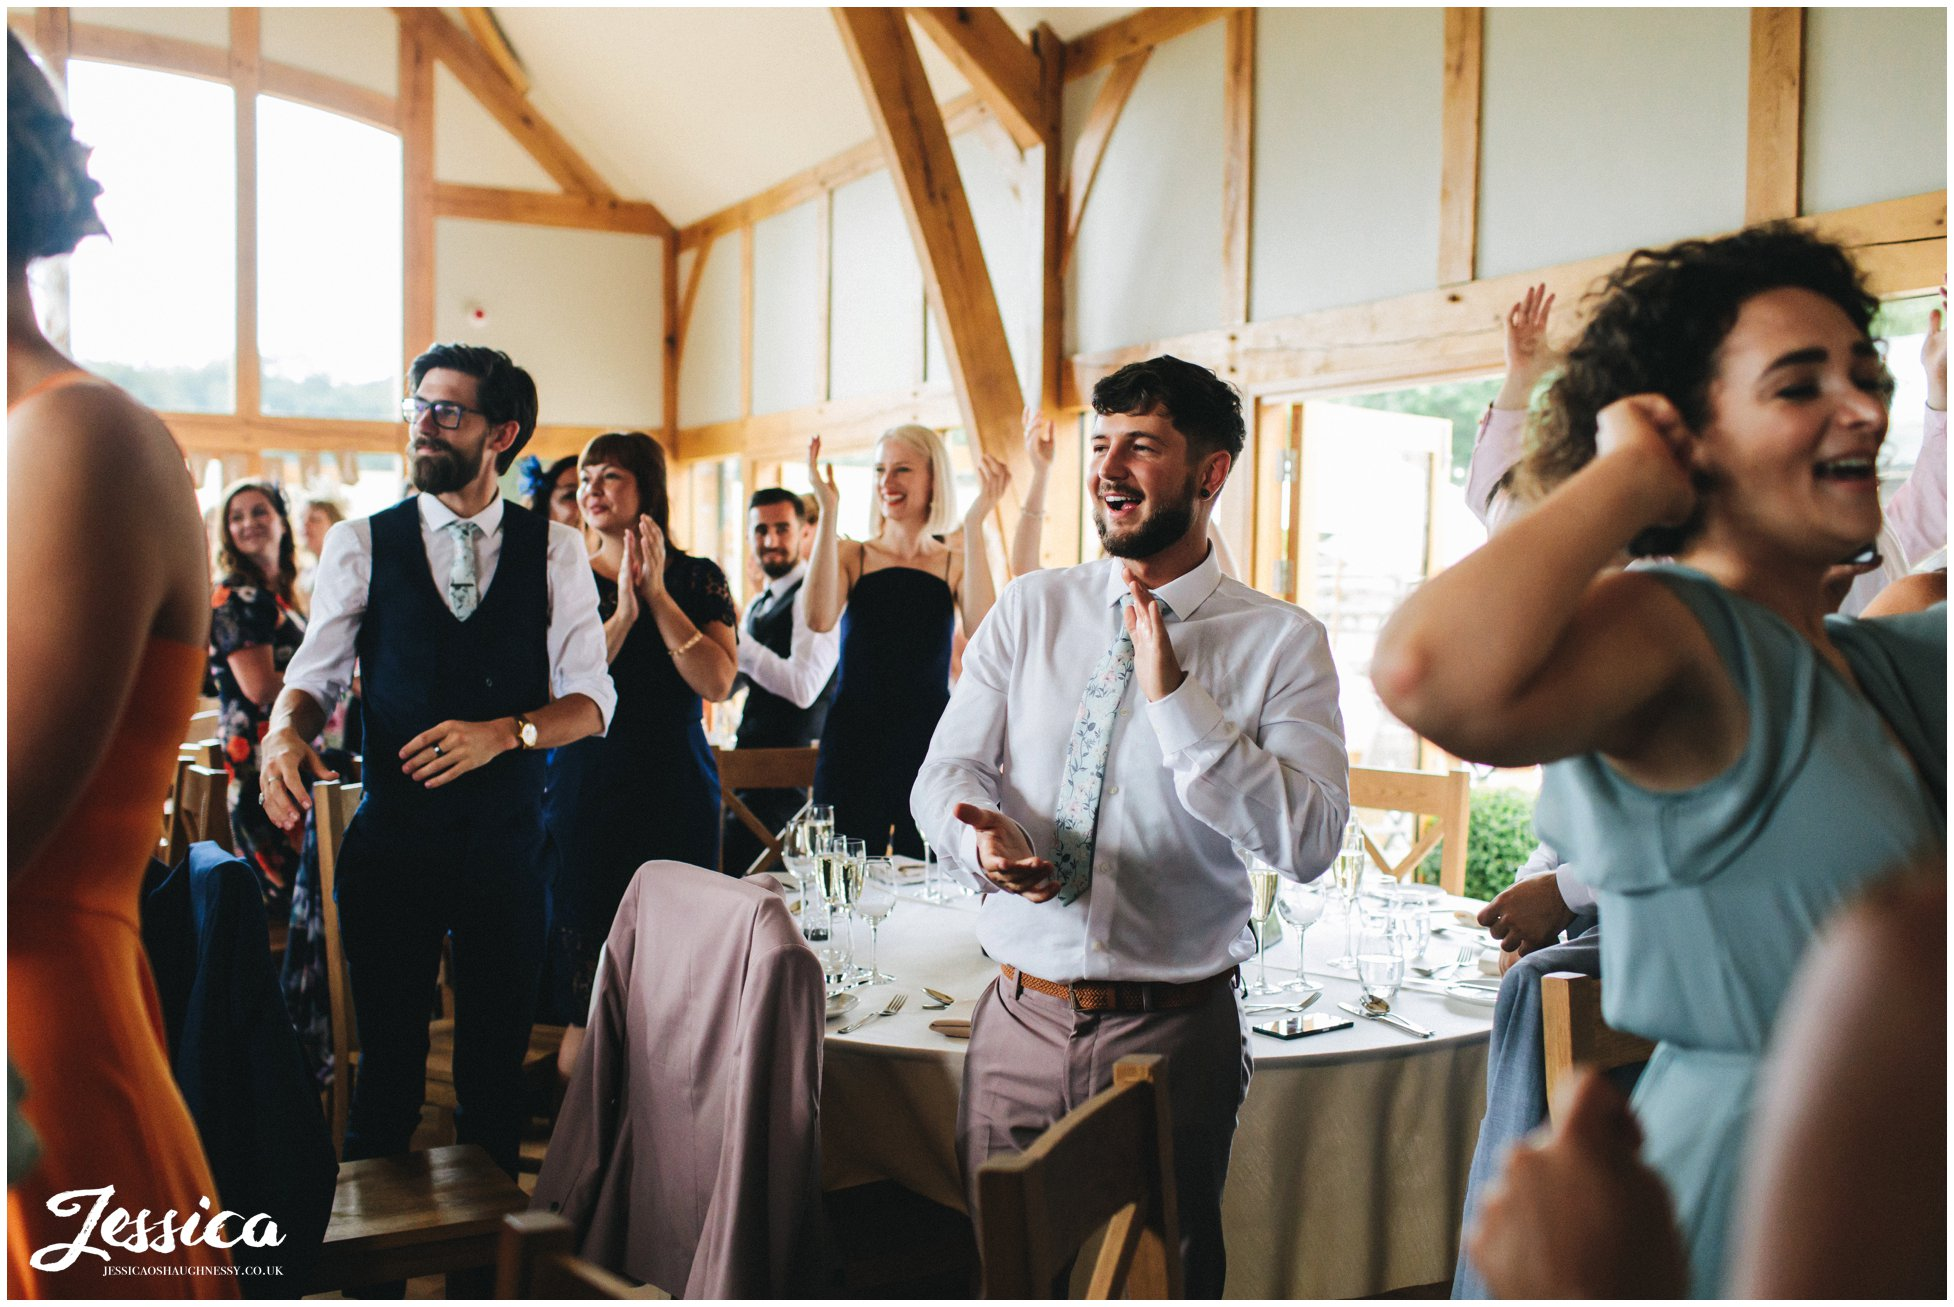 guests clap as they welcome in the new couple